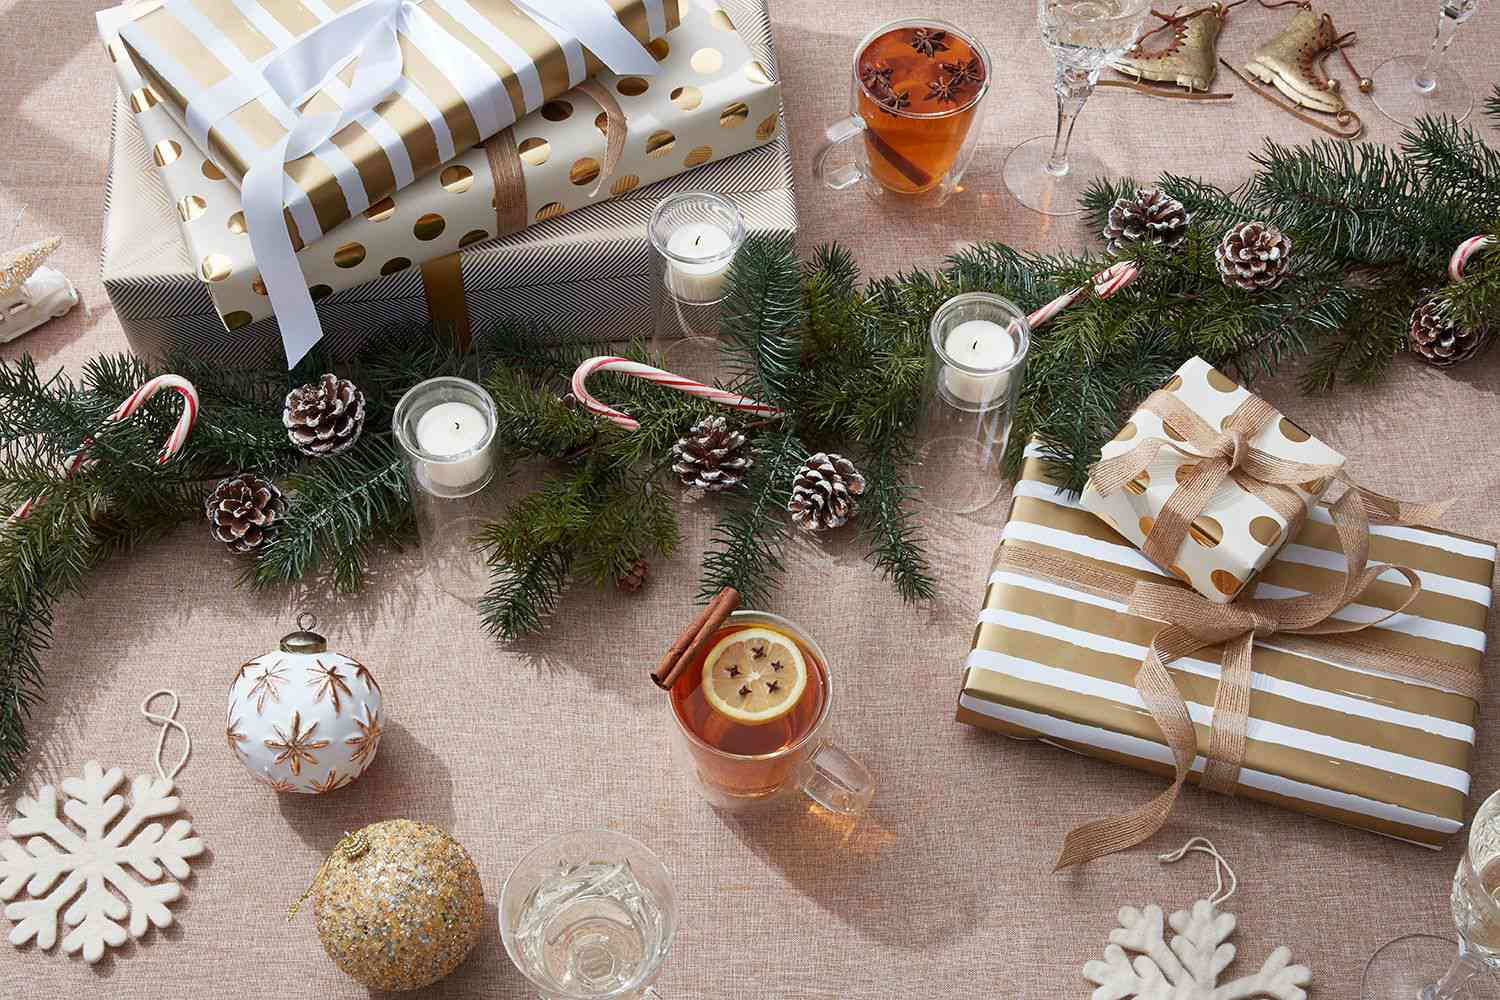 incorporating greenery and pinecones into holiday decor